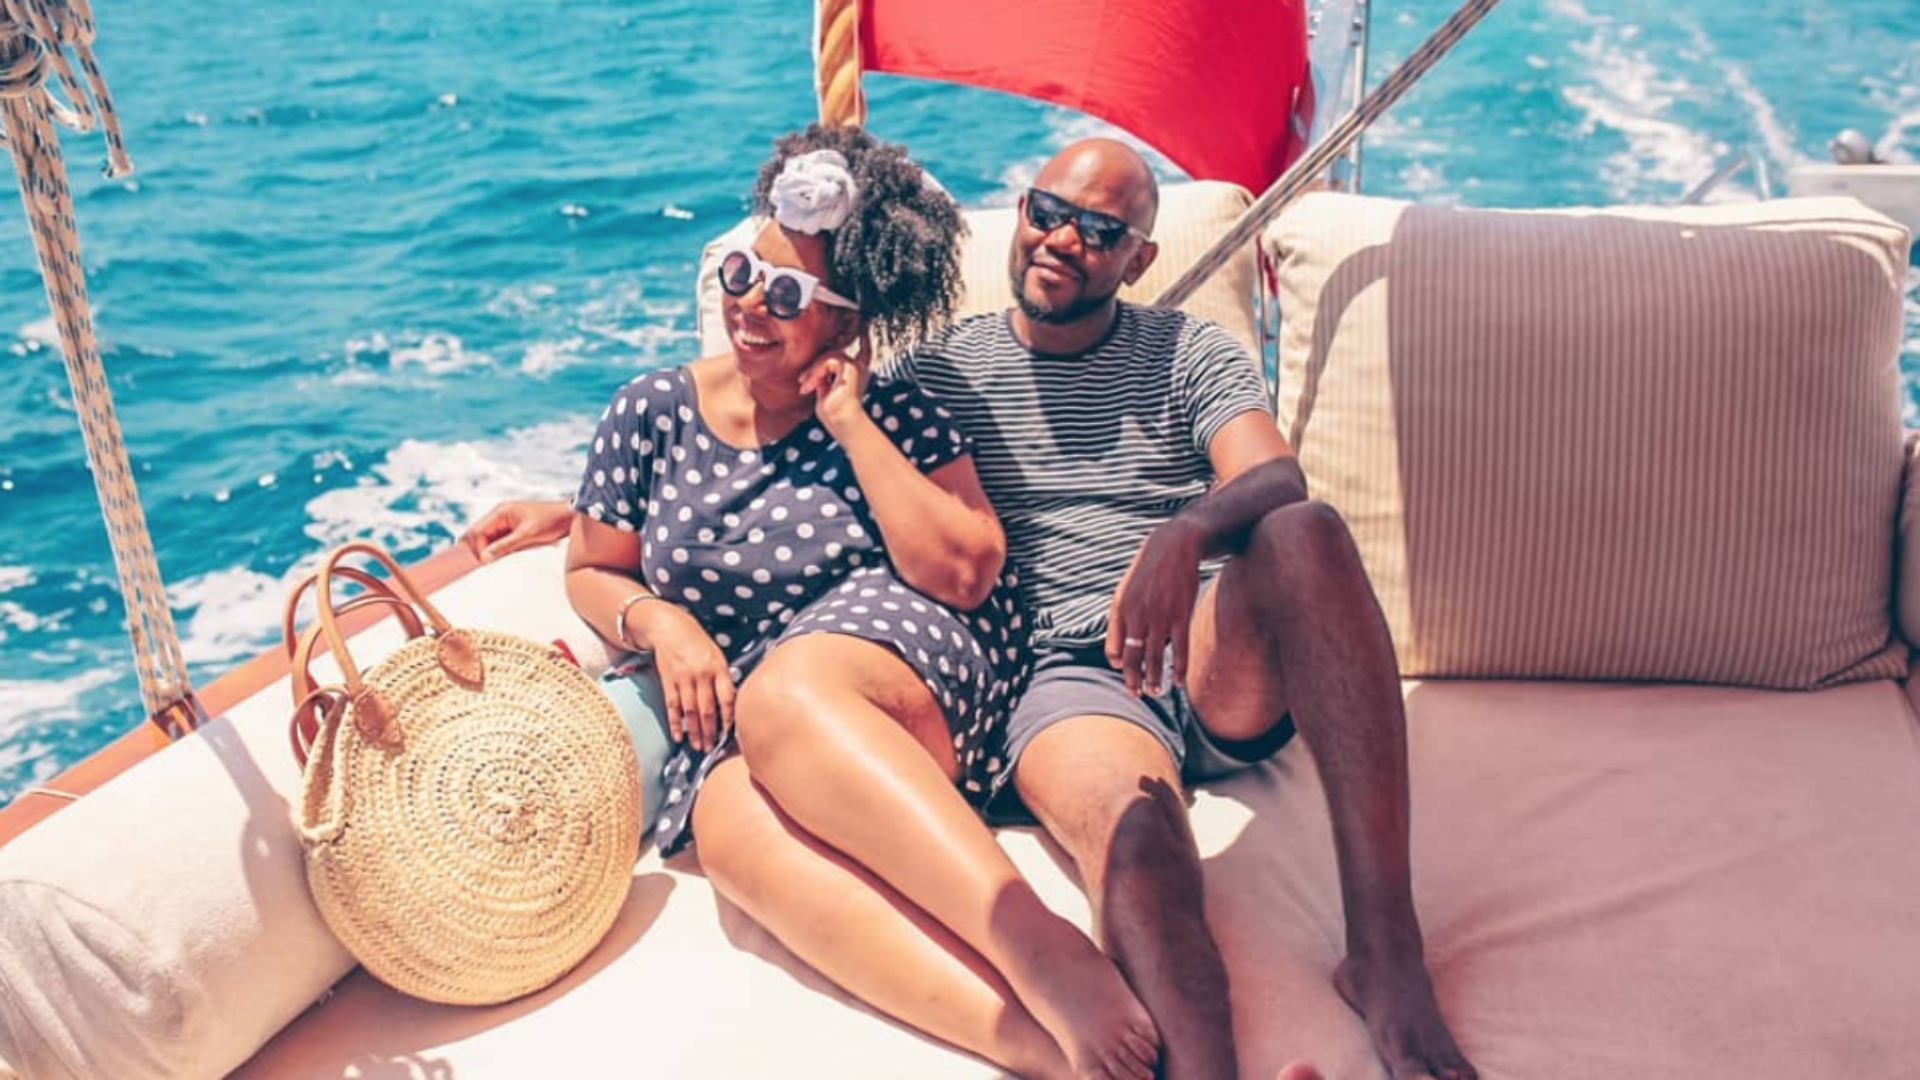 Black Travel Vibes: This Bodrum Baecation Was Pure Romance